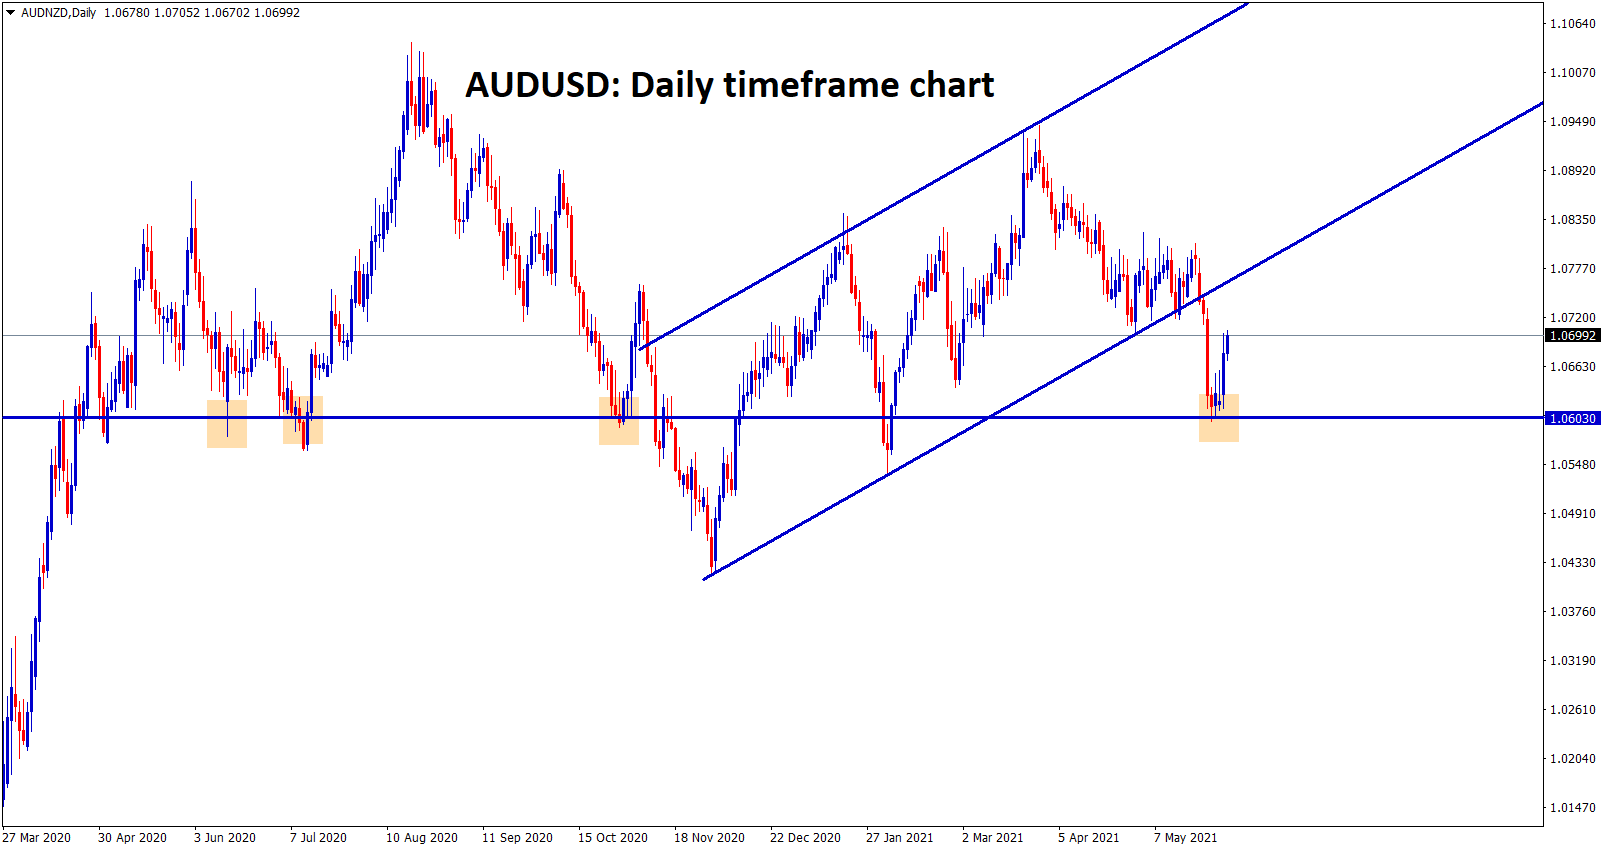 AUDNZD is bouncing back from the important support zone